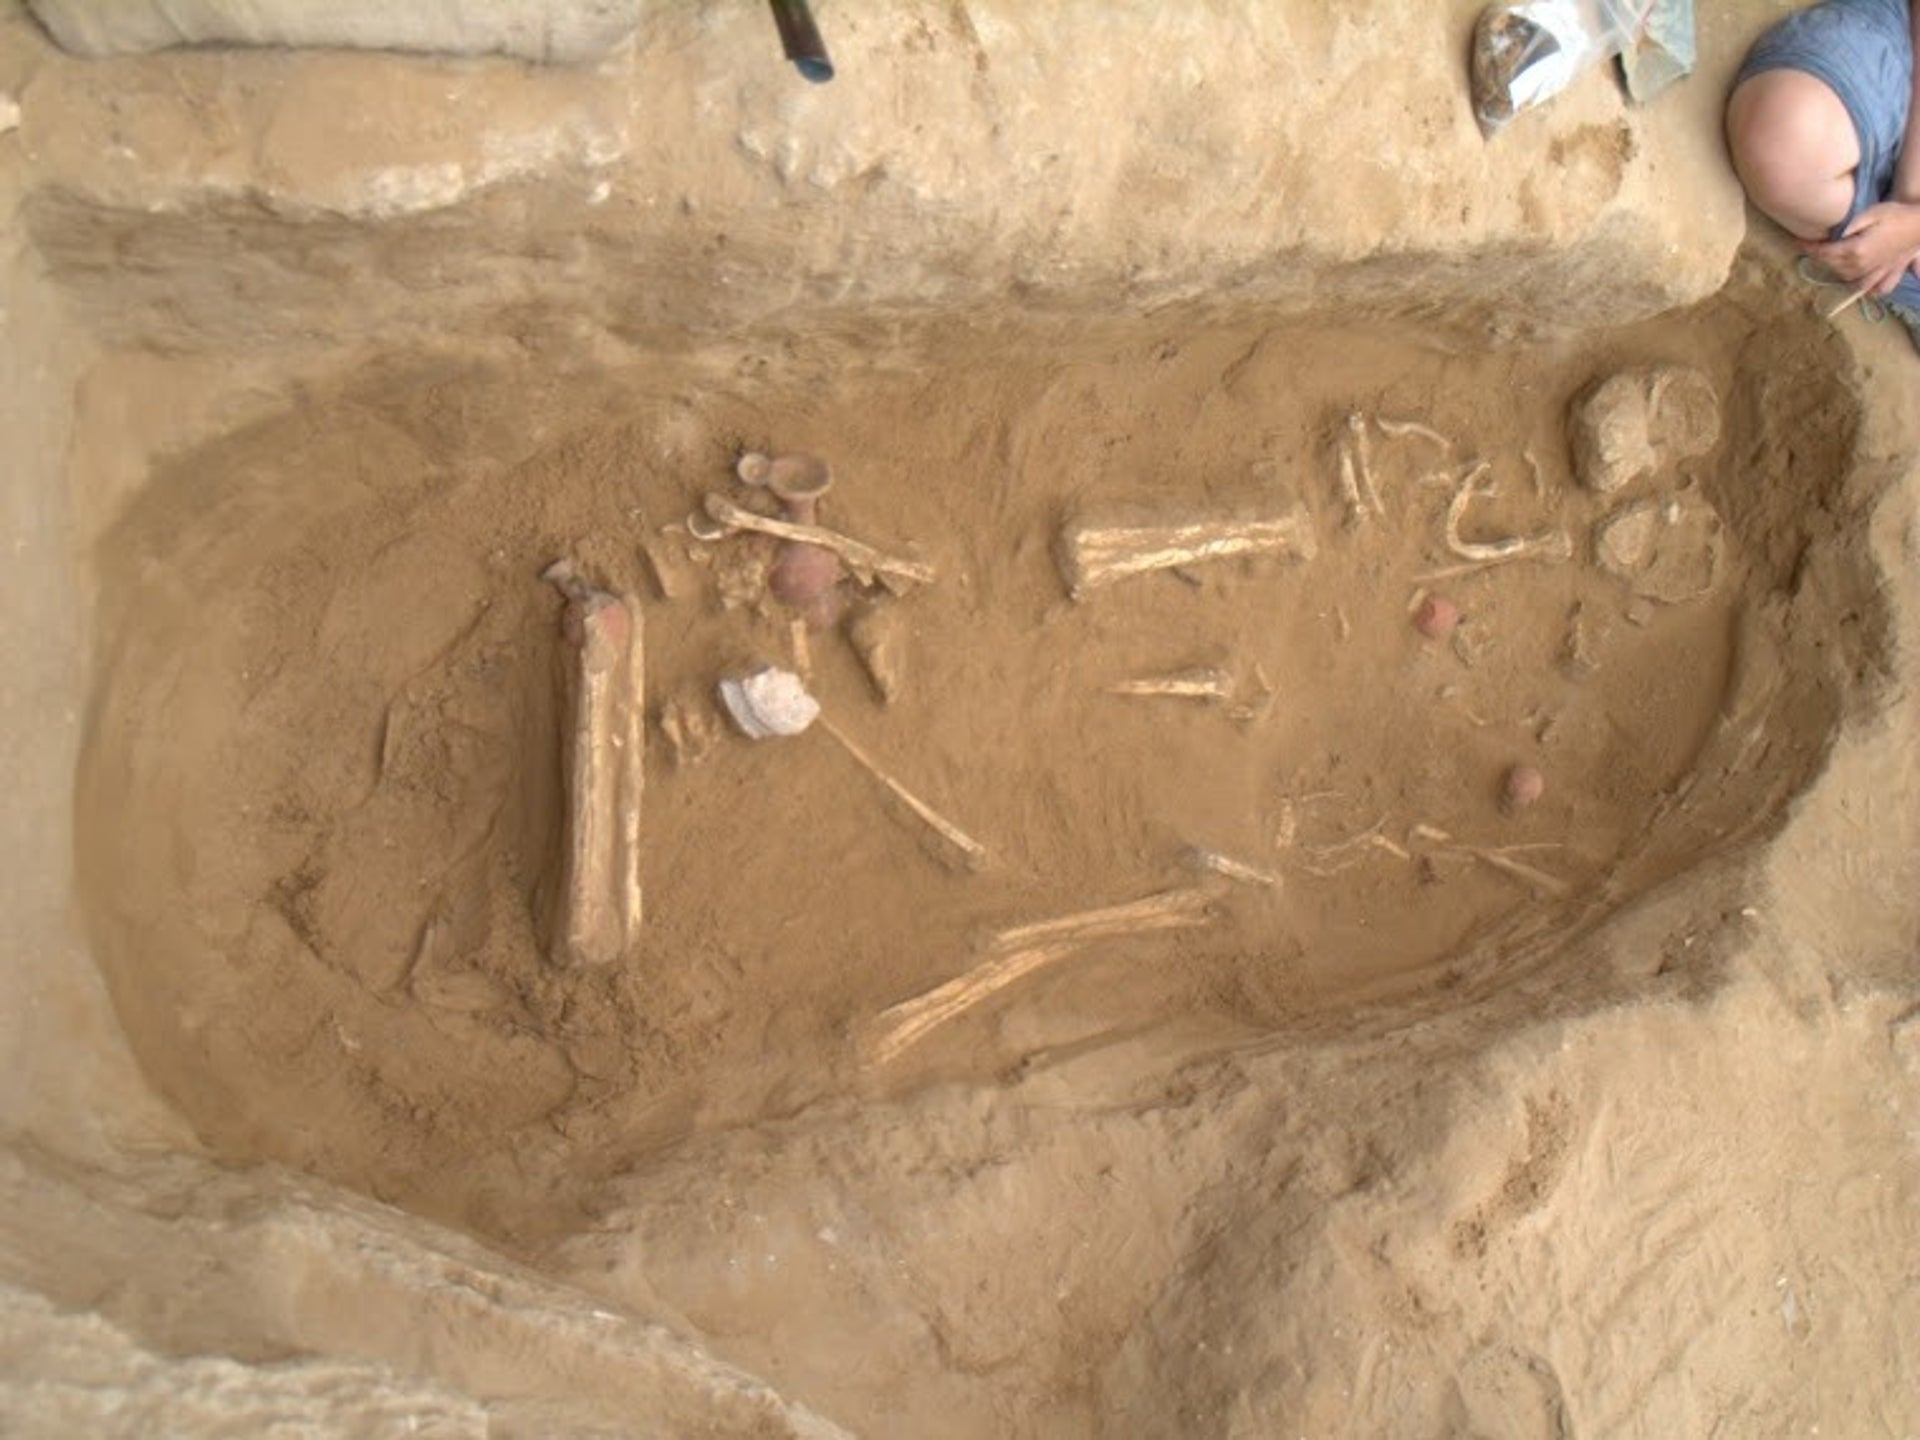 Artifacts found with the skeletons in the Philistine graveyard in Ashkelon are indicative of Philistine culture, not Canaanite.